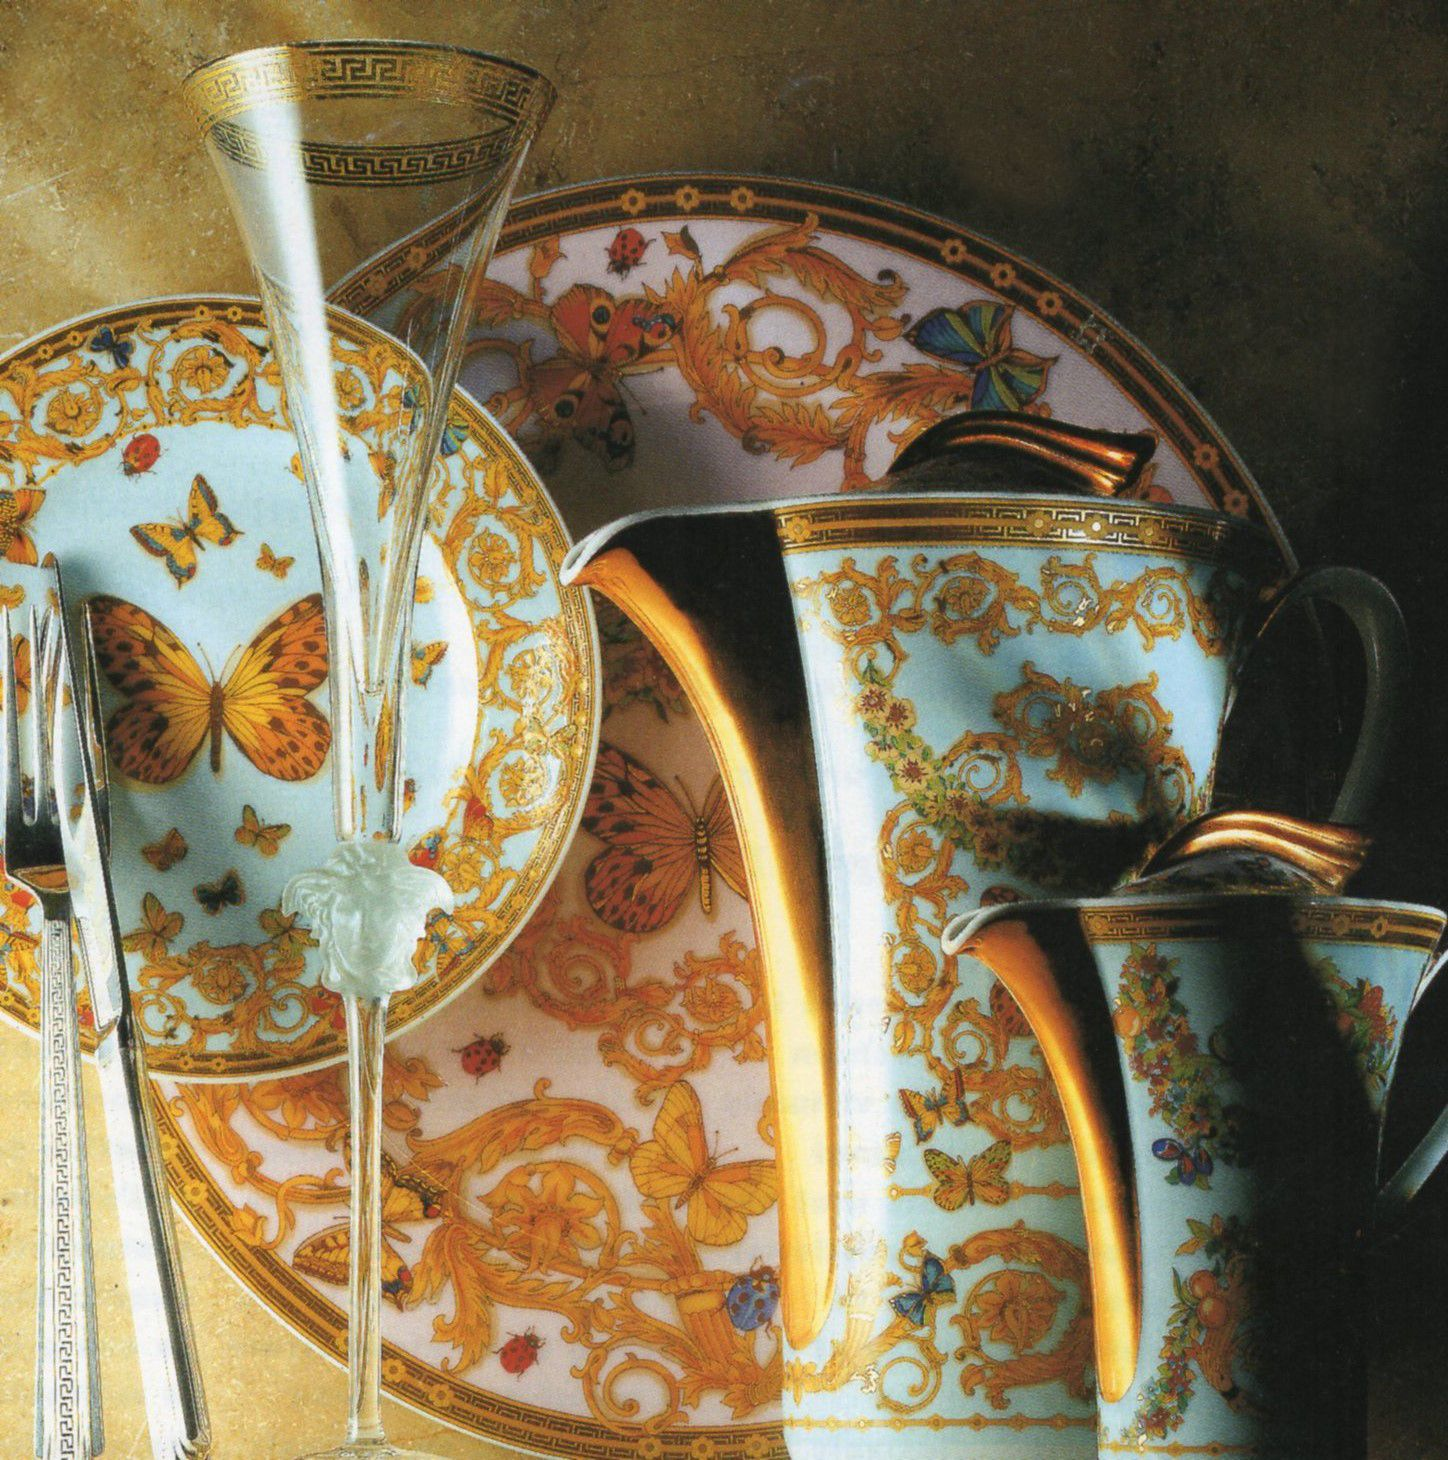 Versace Le Jardin Luxury Dinnerware - luxury dinnerware - luxury tableware - luxury table setting ideas